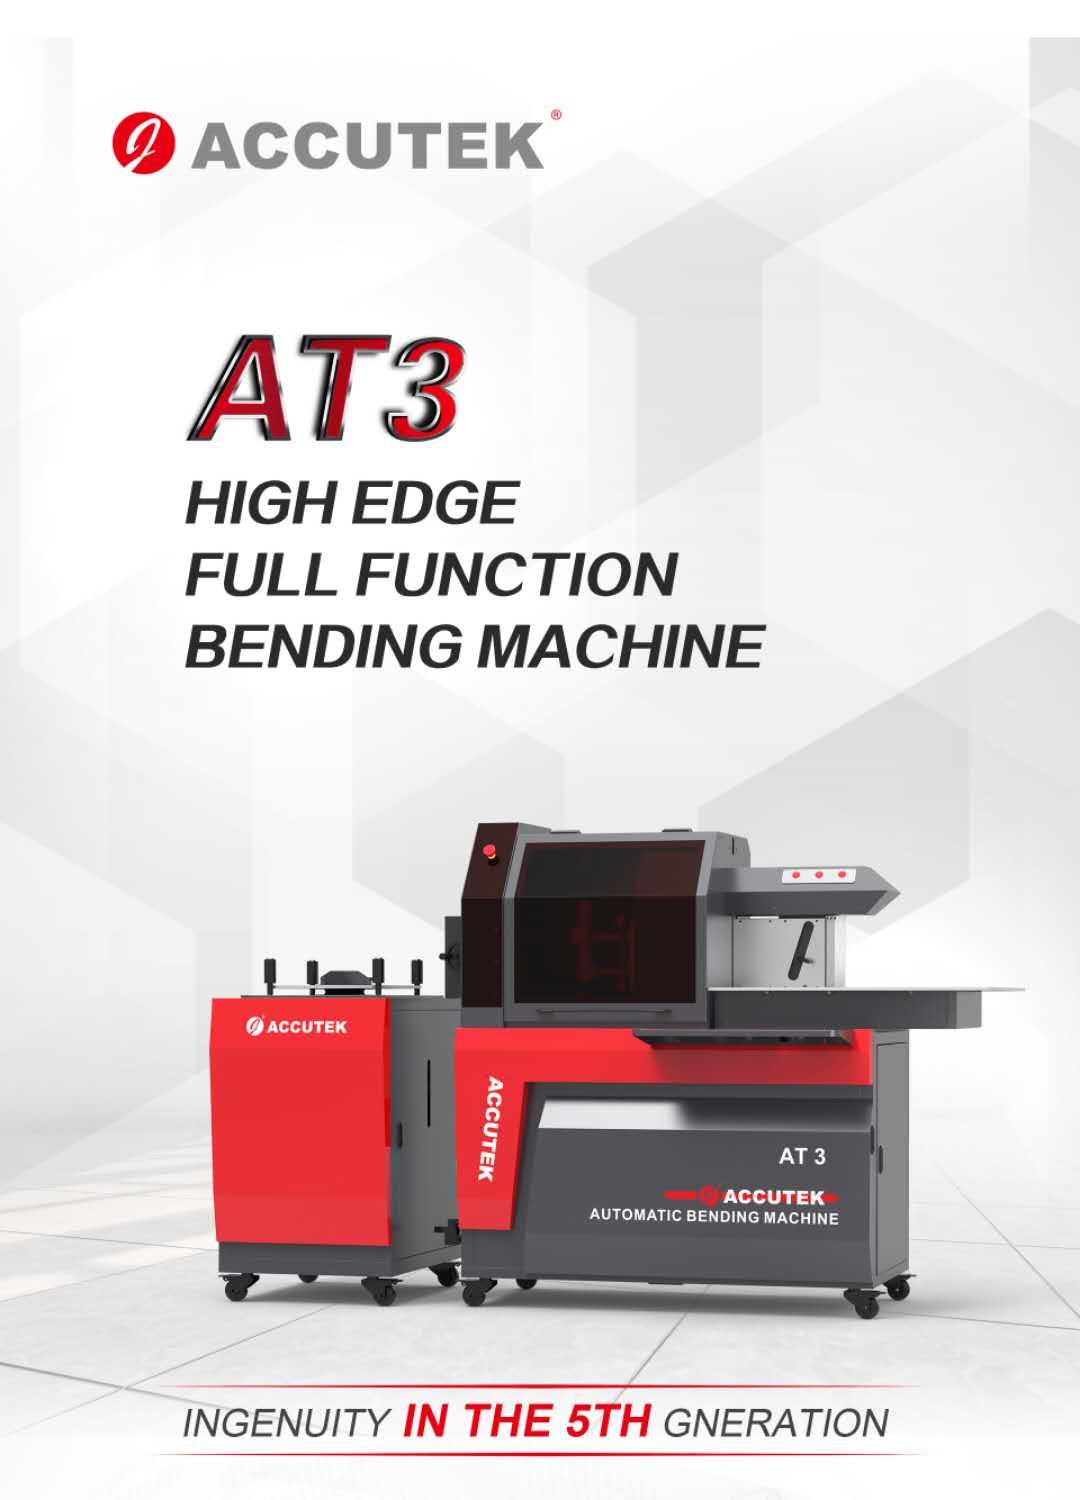 ACCUTEK AT3 HIGH EDGE FULL FUCTION BENDING MACHINE